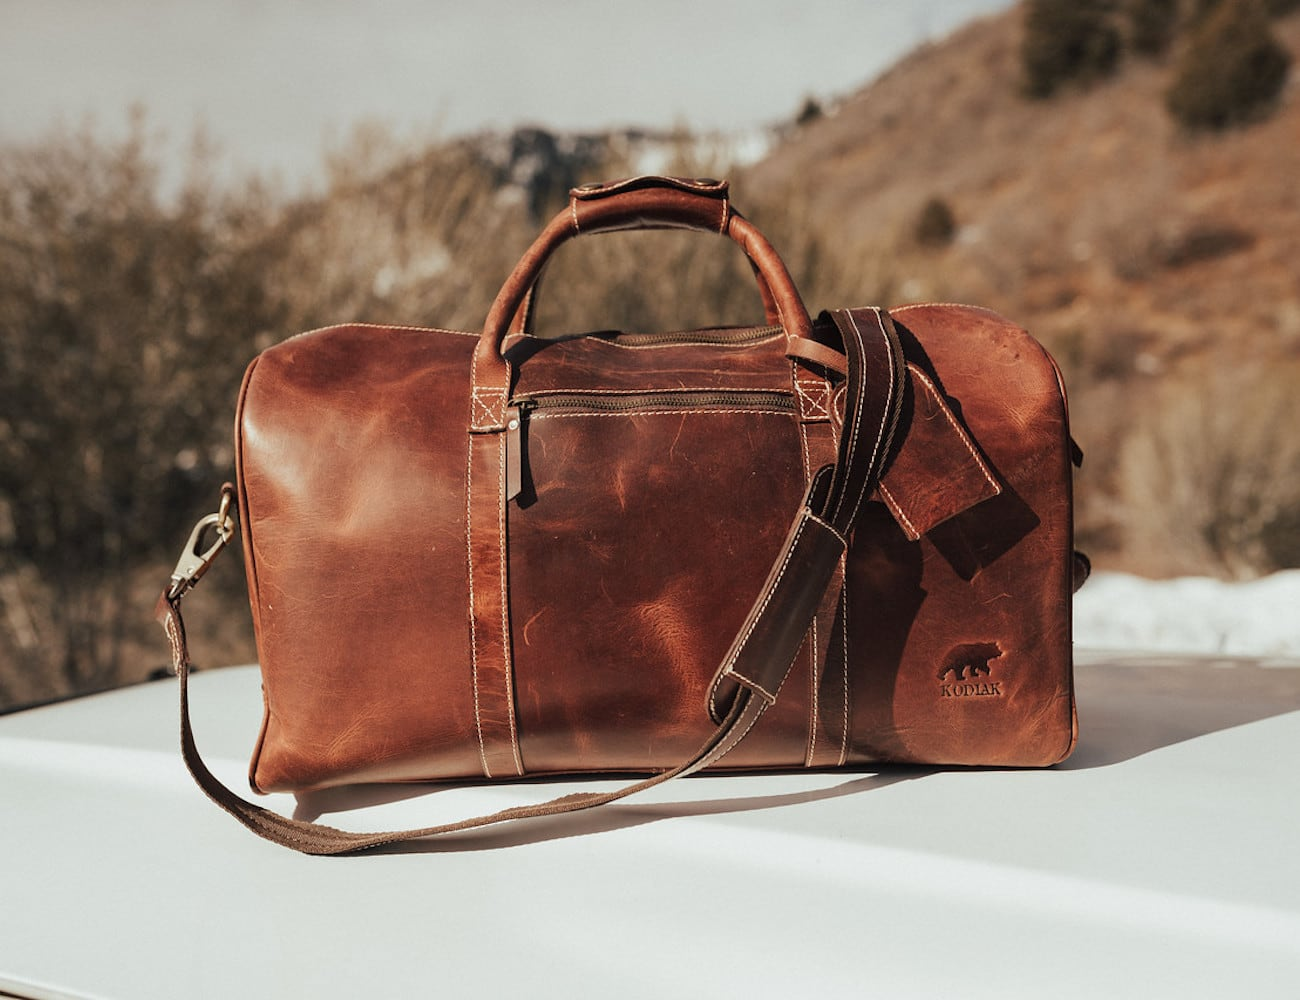 Kodiak Leather 30L Weekender Leather Duffel Bag fits all your weekend essentials